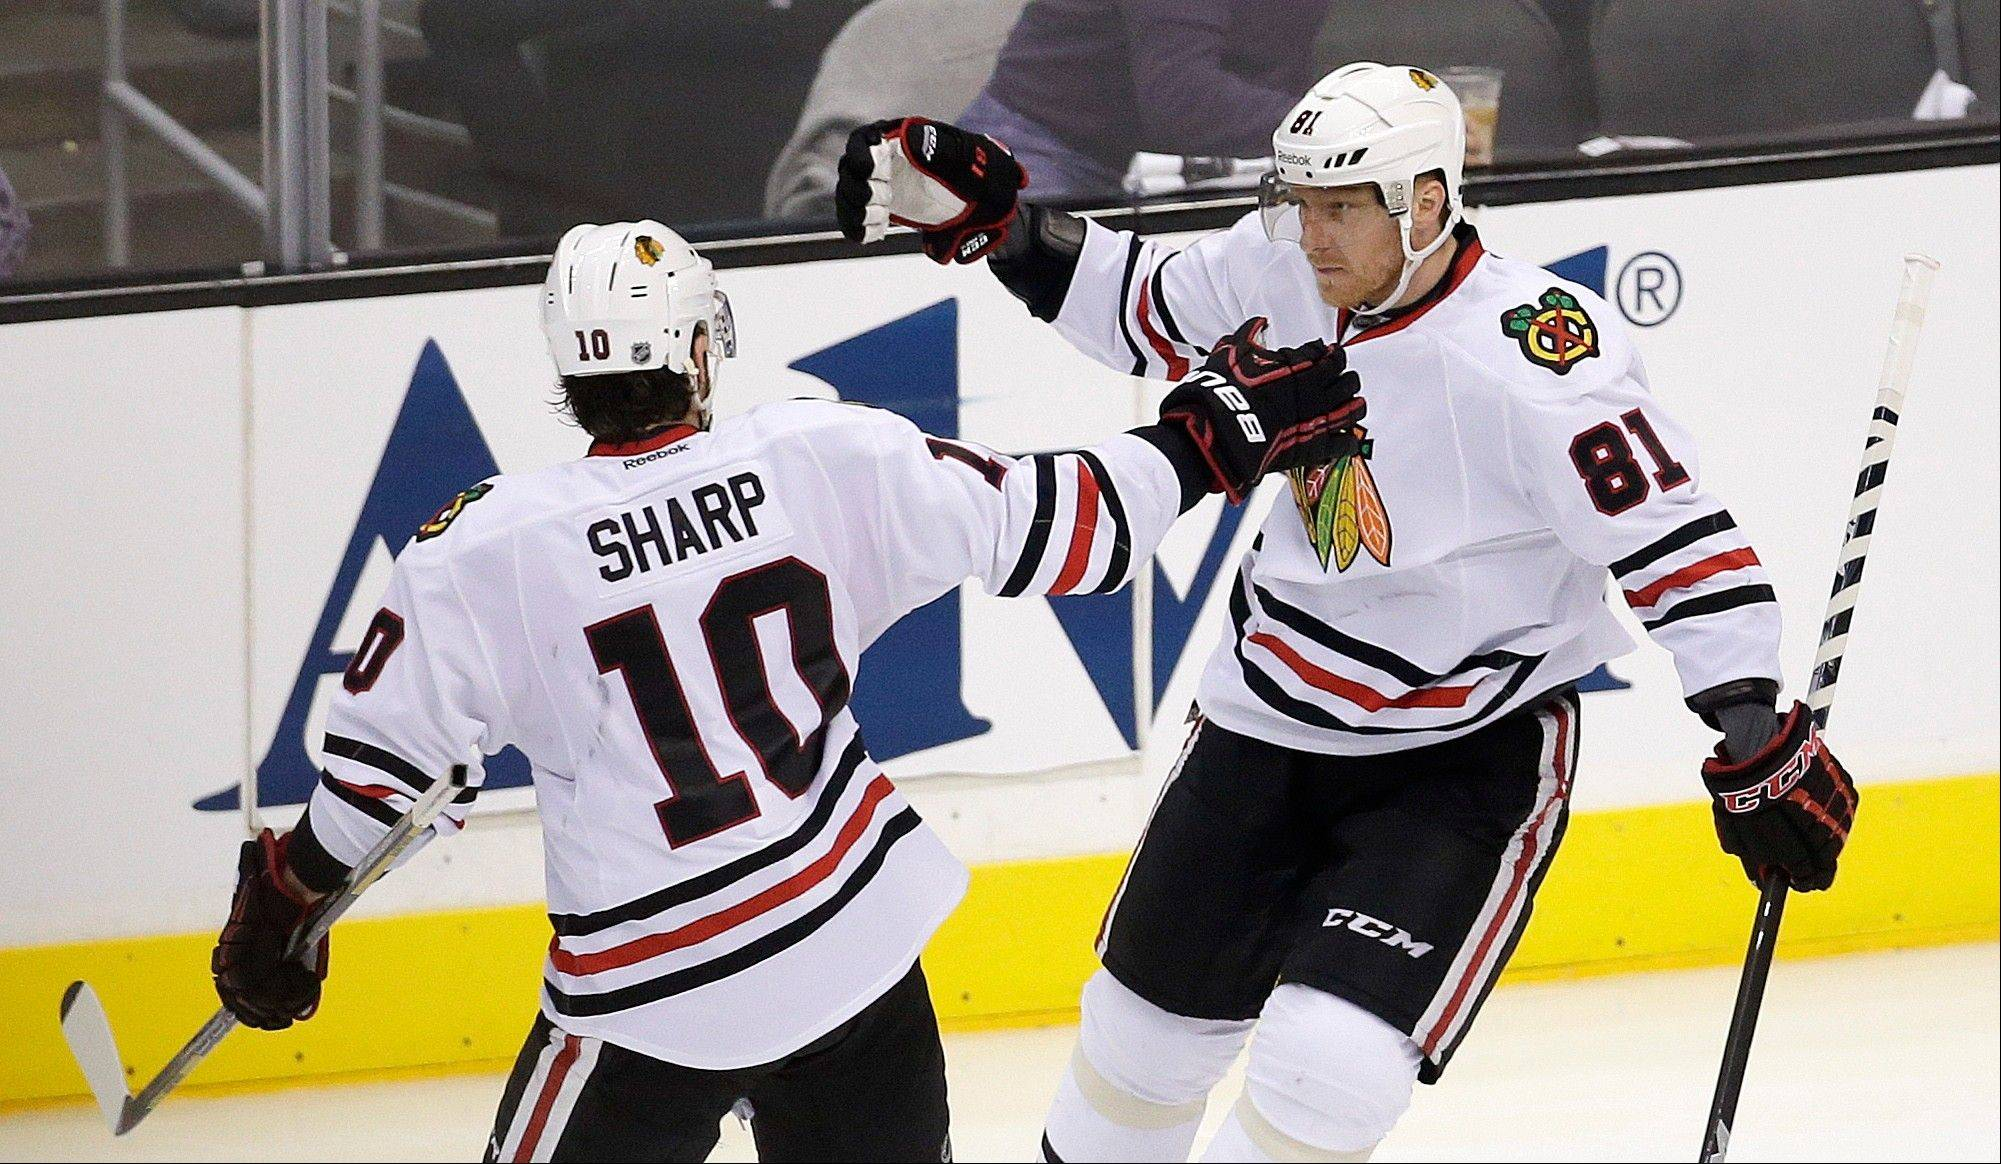 Hossa's goal puts Blackhawks closer to Stanley Cup Finals